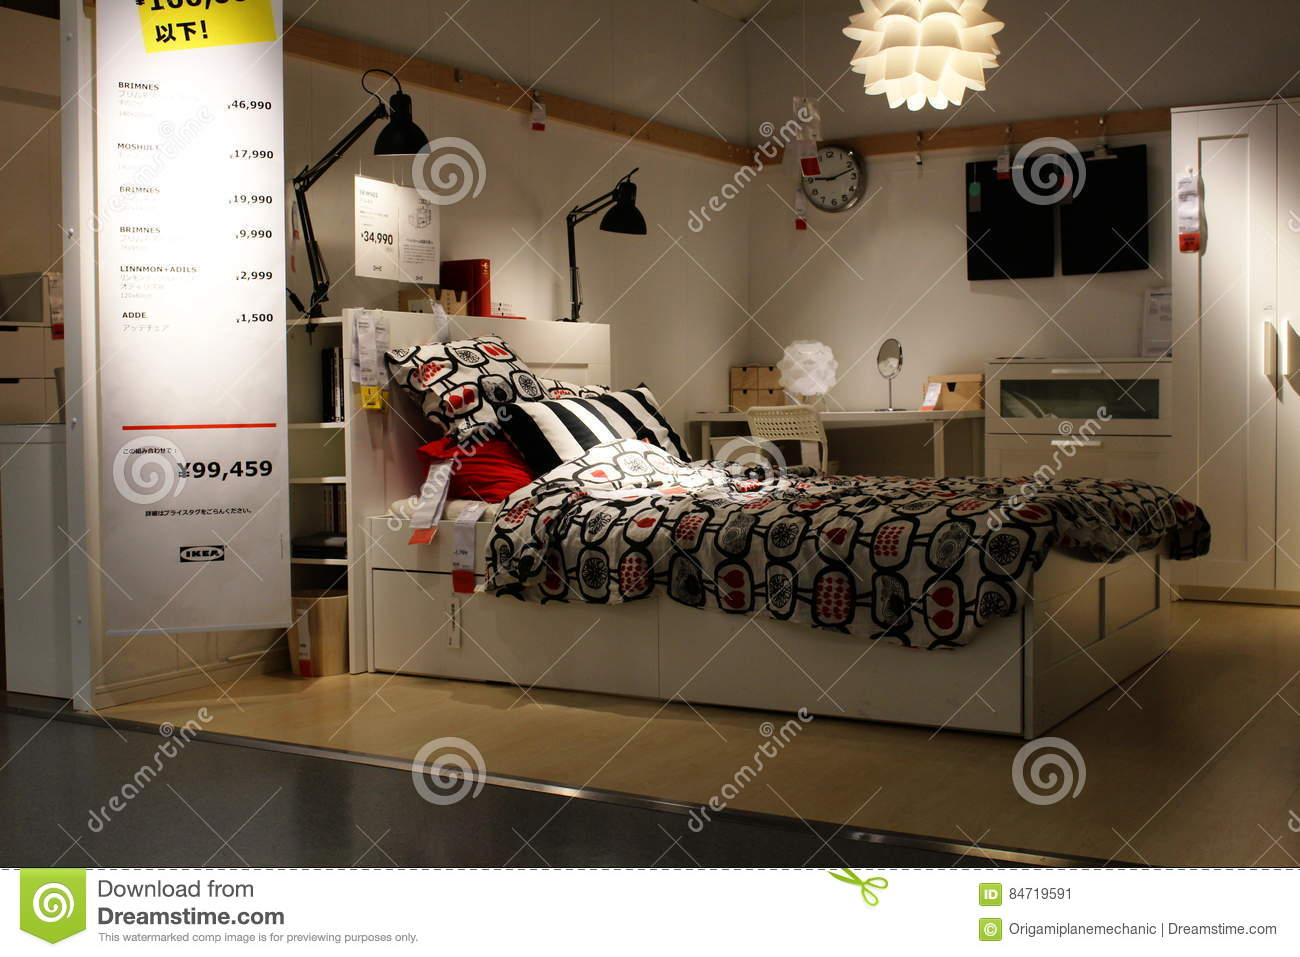 Bedroom In An Ikea Store In Japan. Editorial Photo - Image of